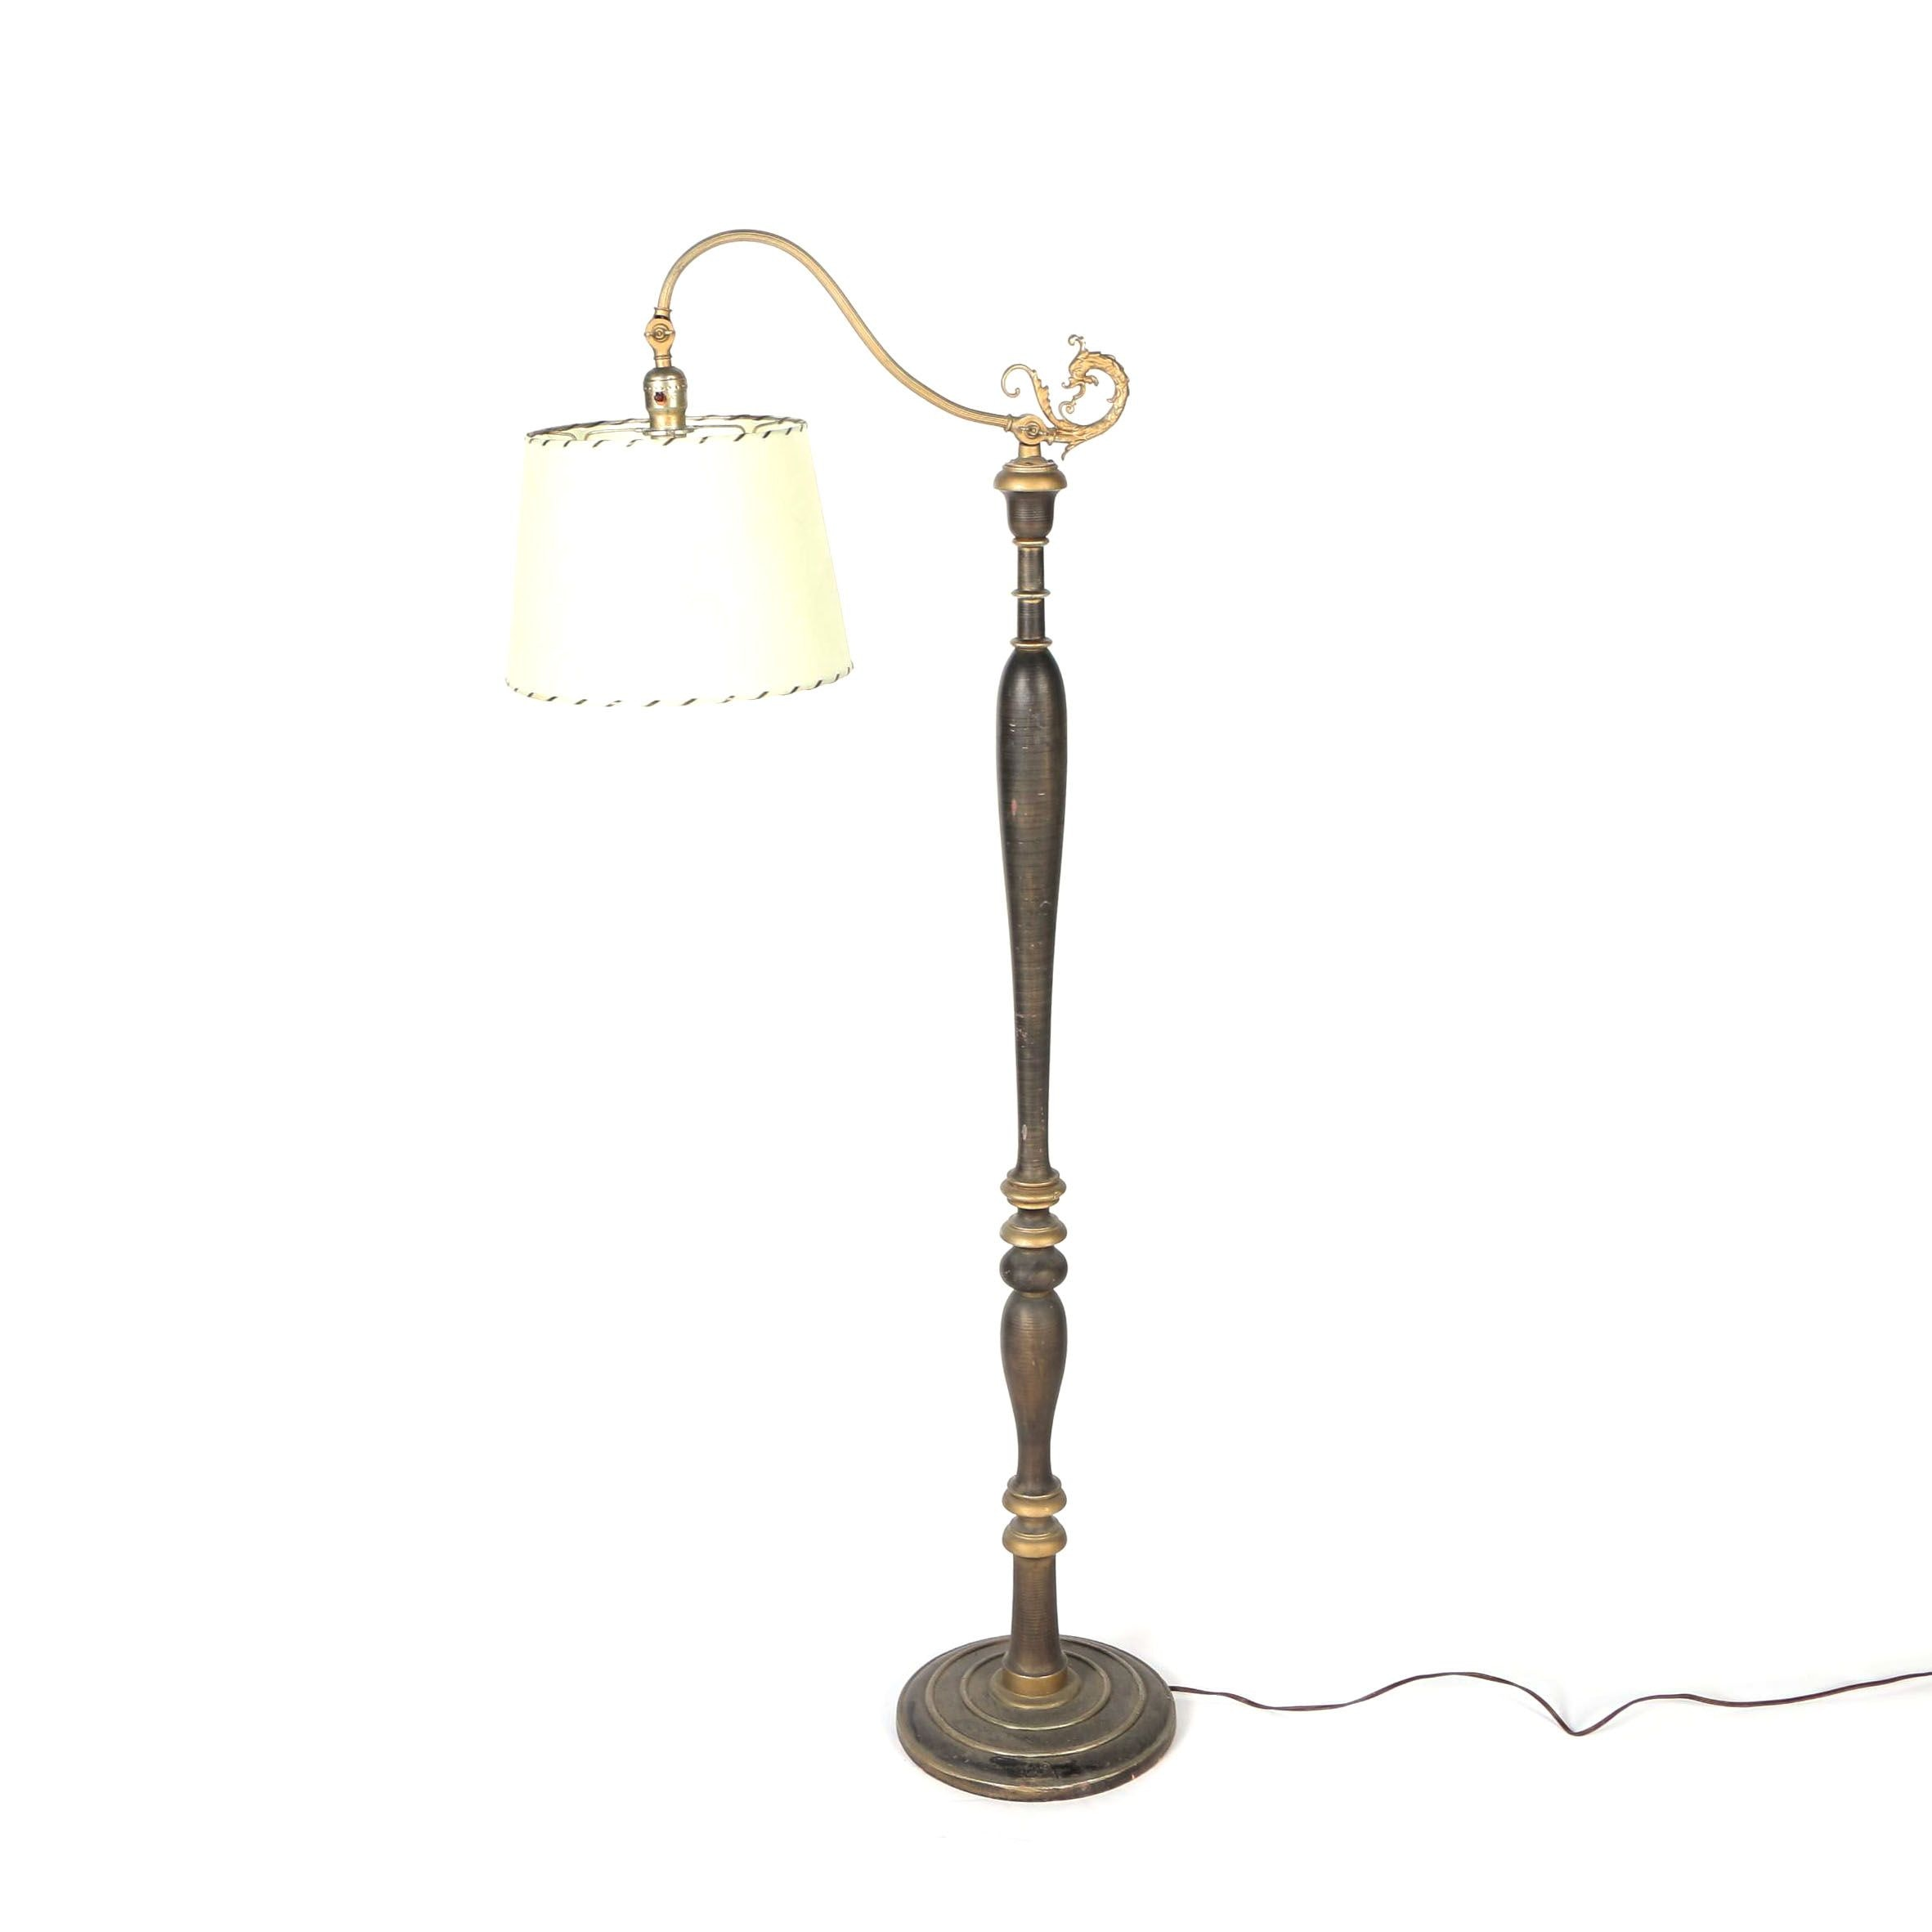 Brass and Wood Dragon Floor Lamp